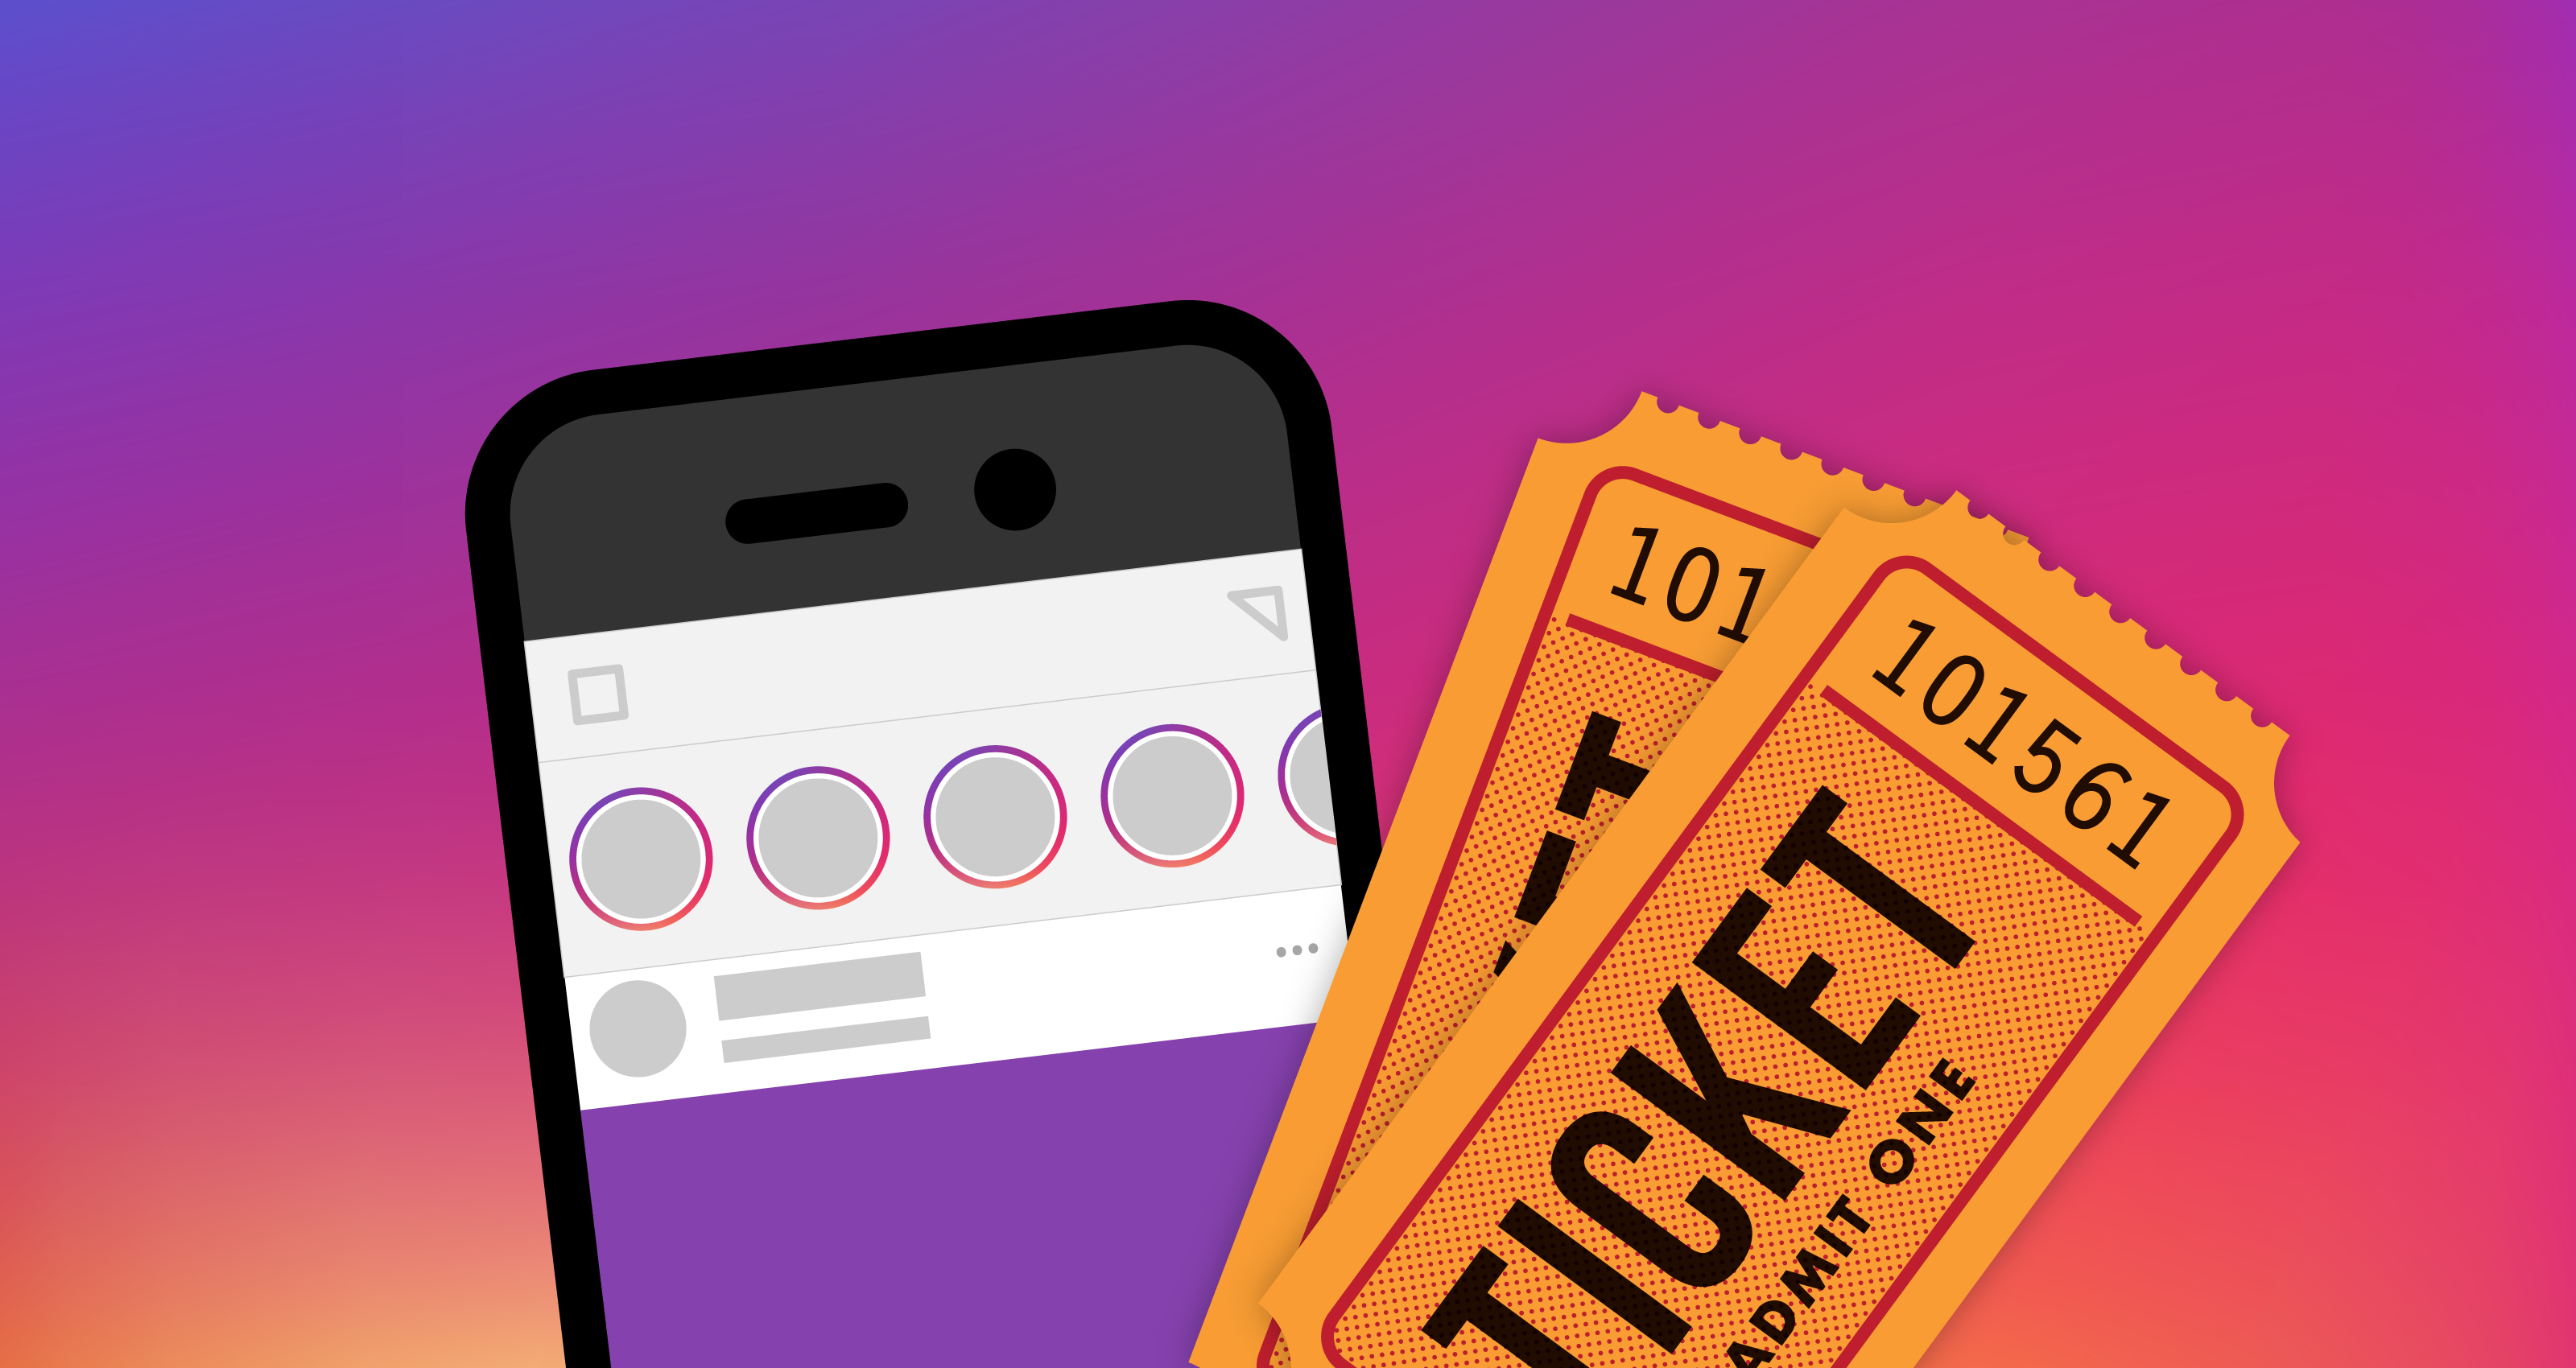 Now you can make reservations and buy movie tickets on Instagram